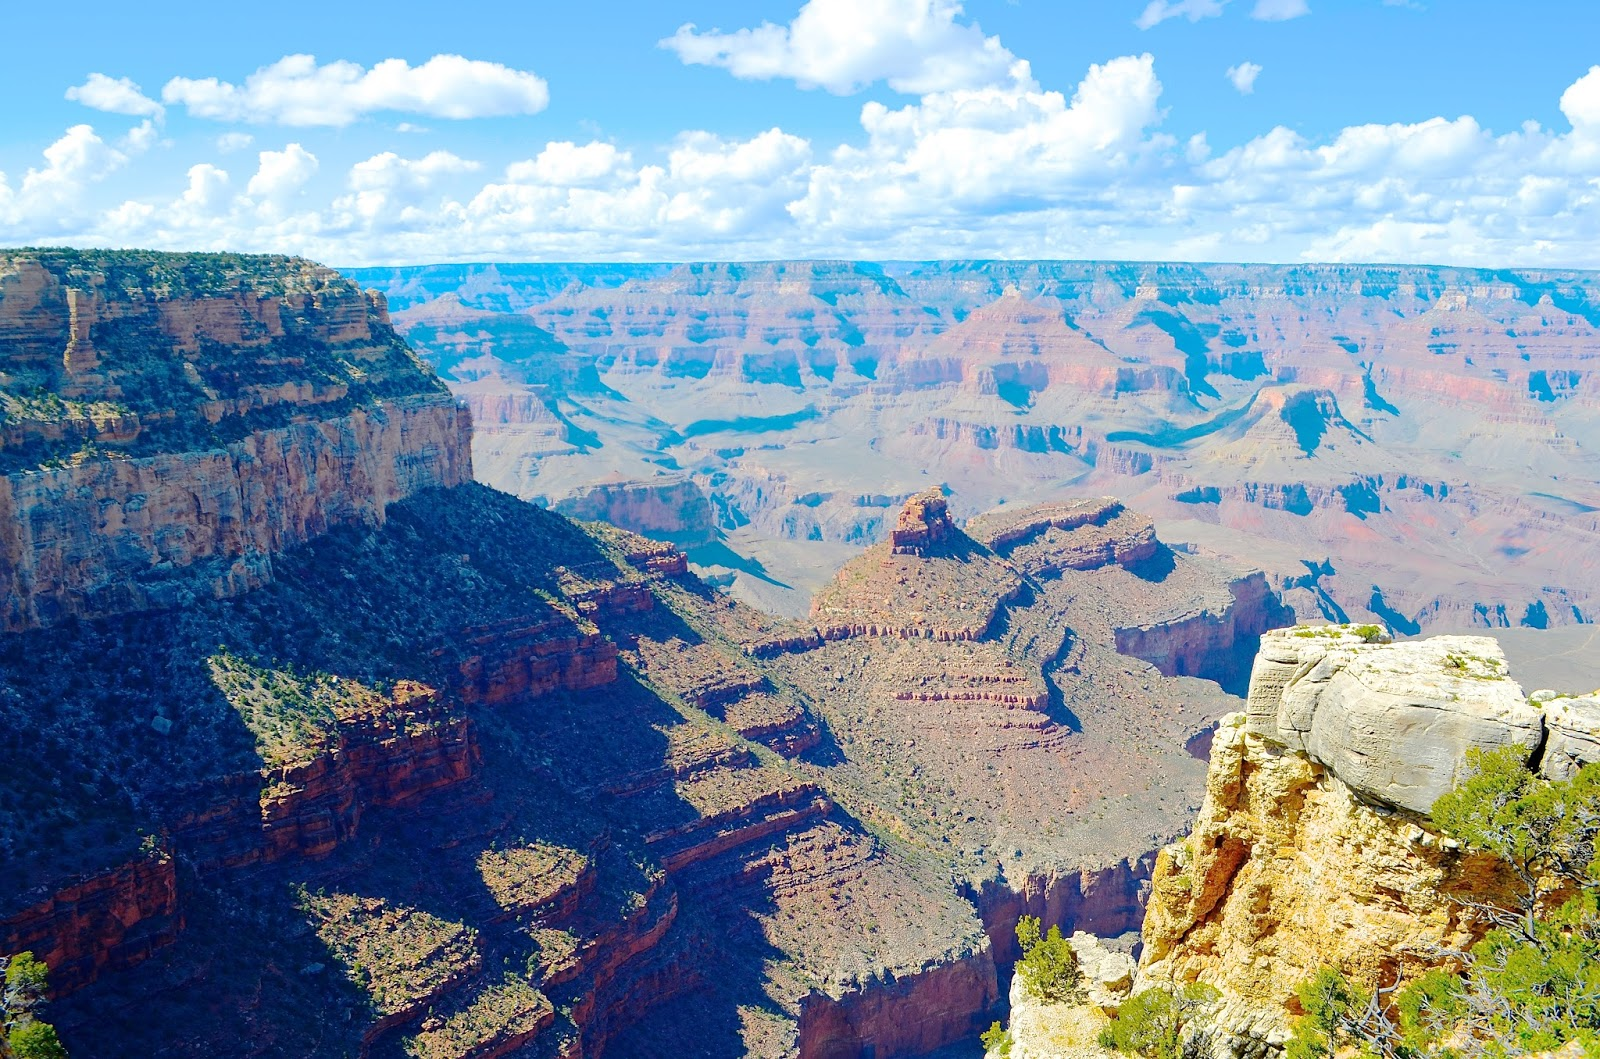 Trek America, Travel, Travel blog, trek america review, trek america blog, dizzybrunette3, travel blog, vegas, national parks, i trek here, youtubers, grand canyon, bryce canyon, america, in n out burger, zion national park